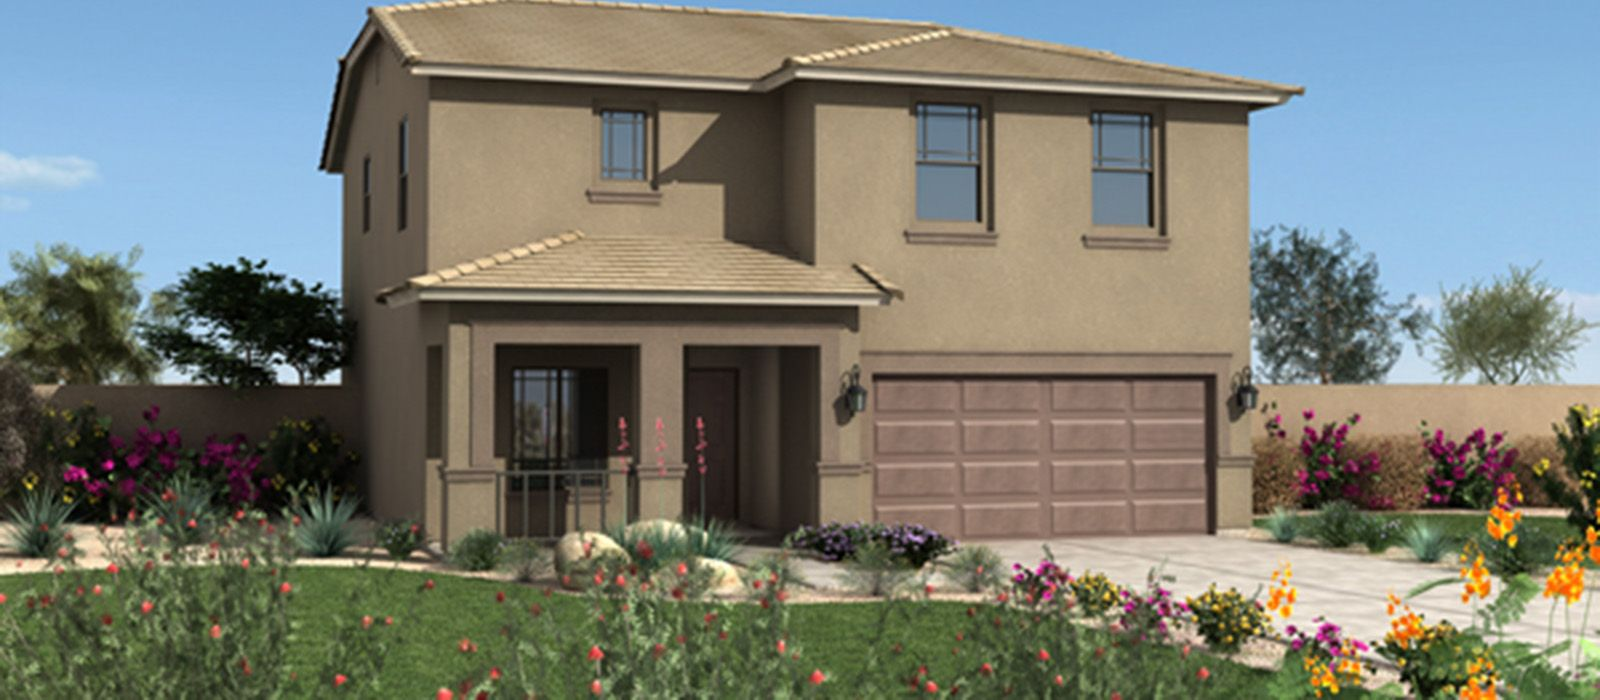 Paradise At Ironwood Crossing in Queen Creek, AZ, New Homes ...